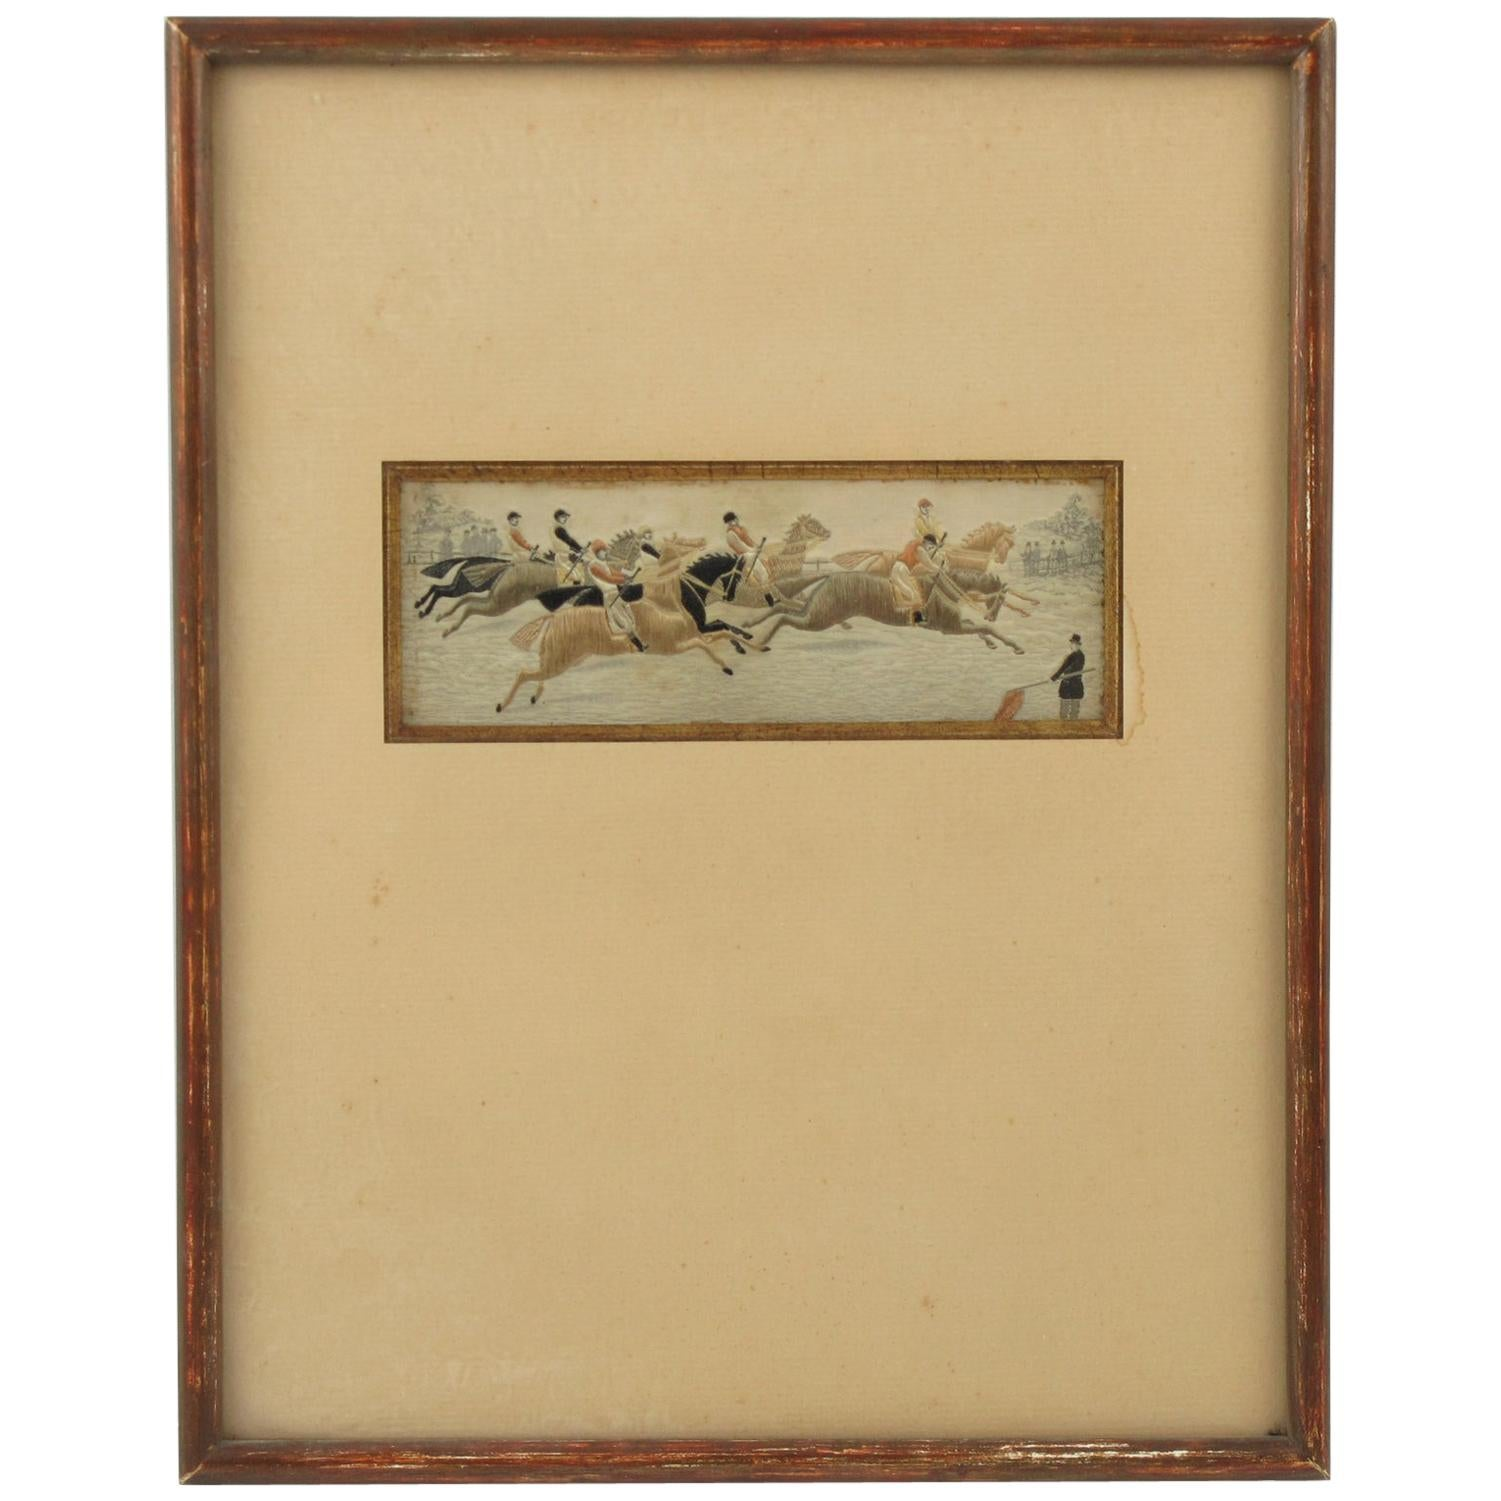 French 19th Century Framed Silk Embroidery Art Work Horse Race